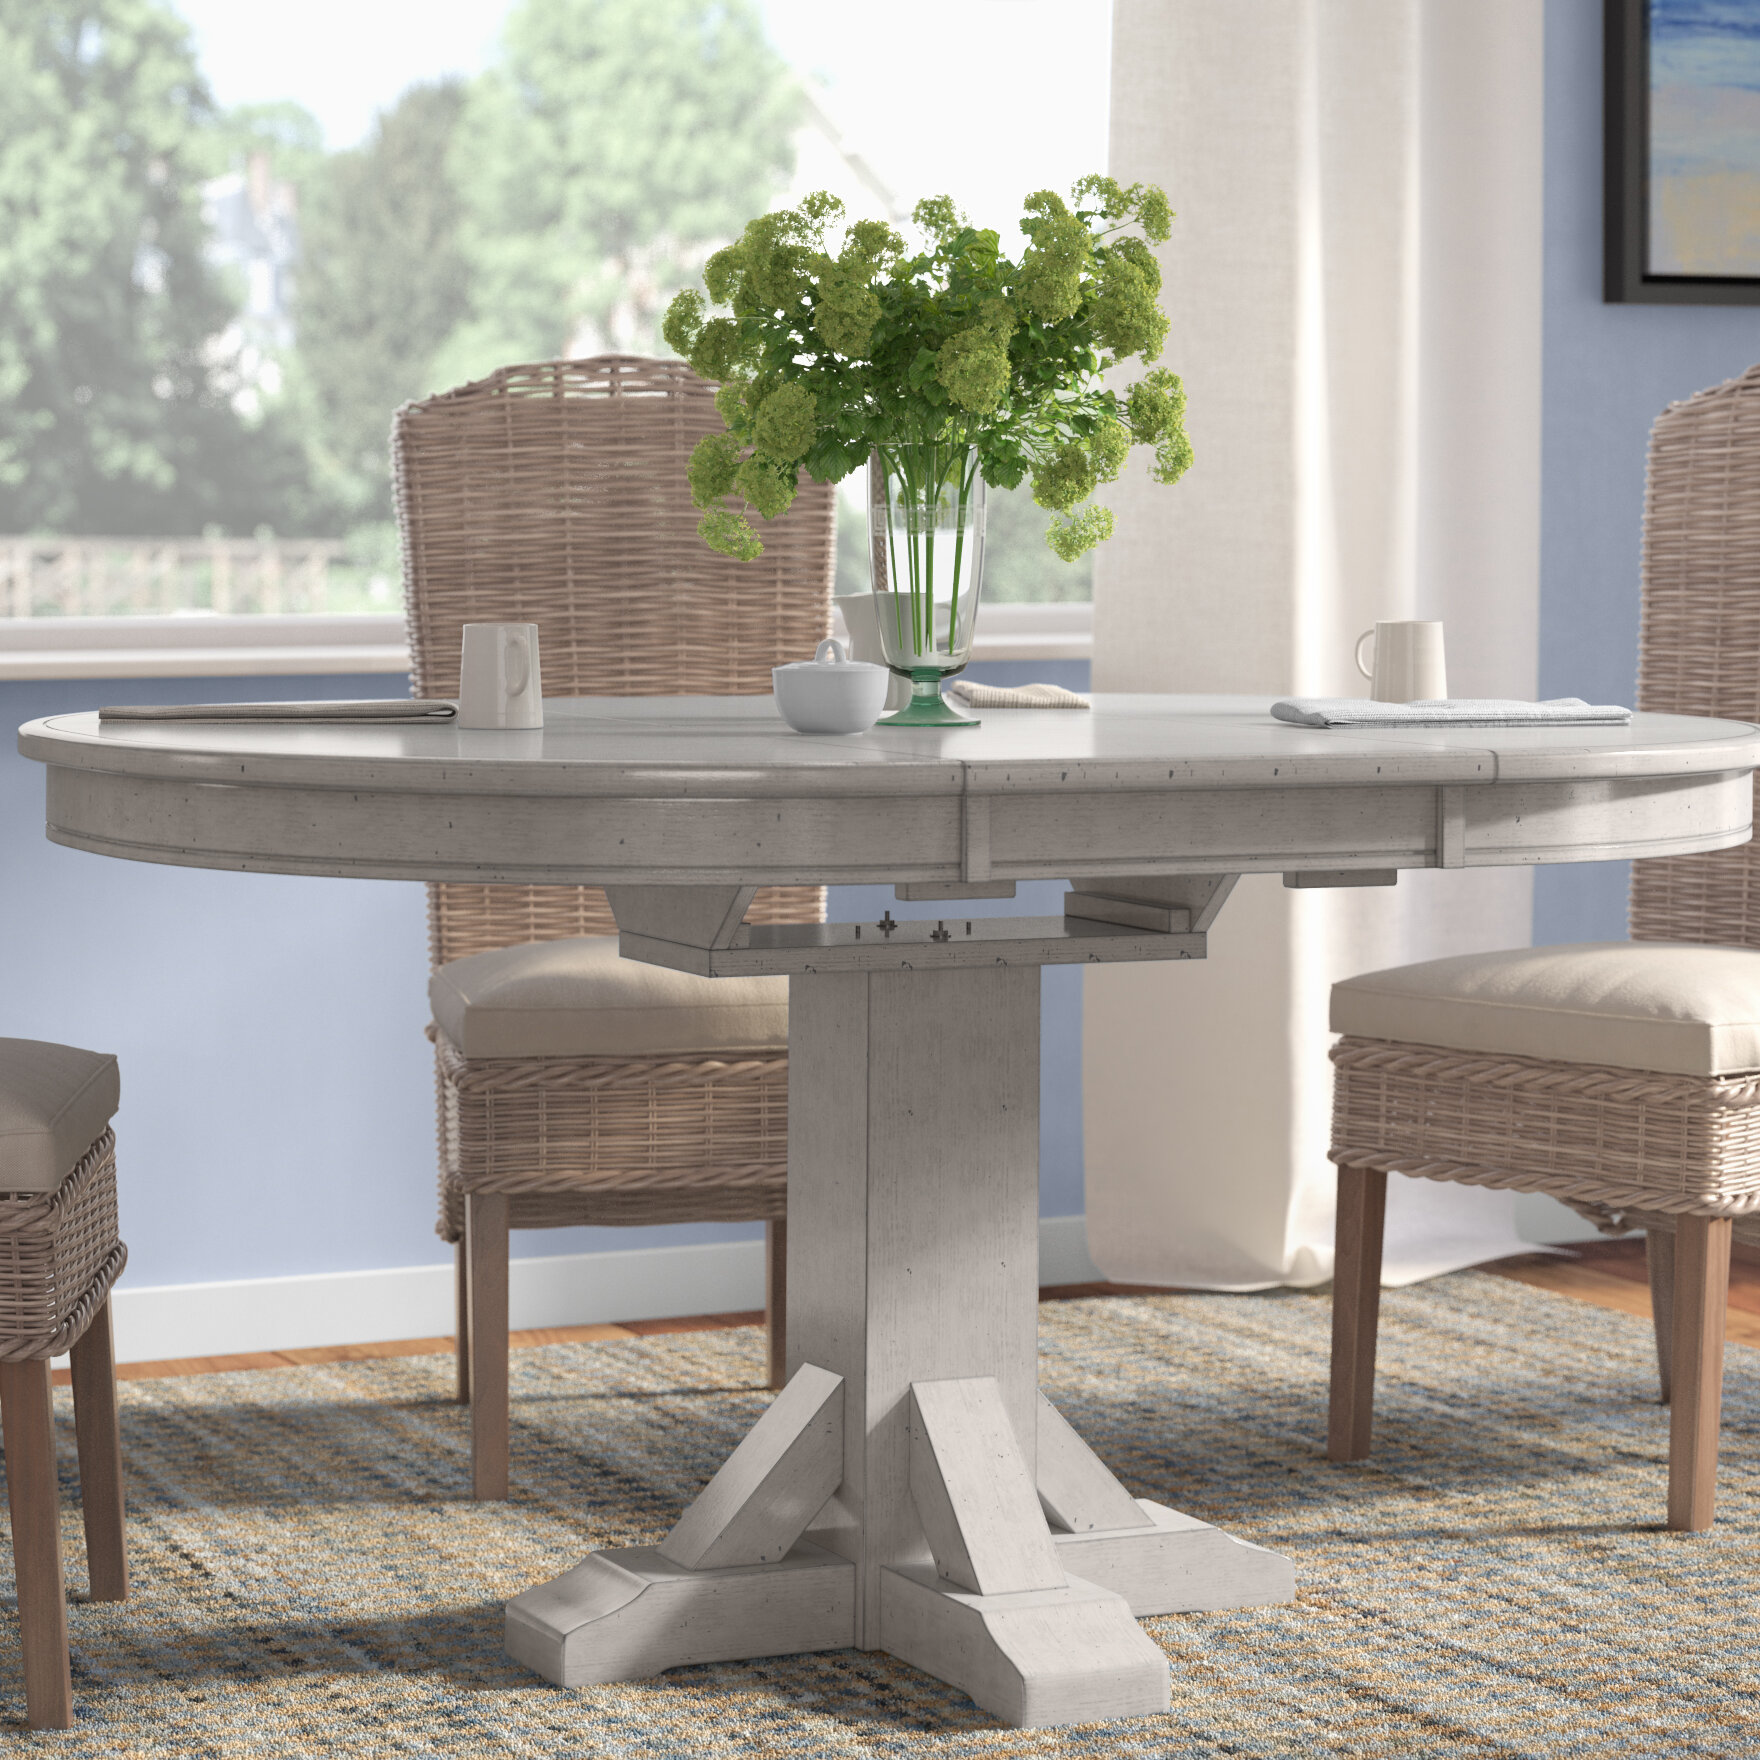 incredible leaf counter hardwareage tables picture chairs butterfly inspirations decor room locksdining thomasville table height kitchen round with pedestal home dining